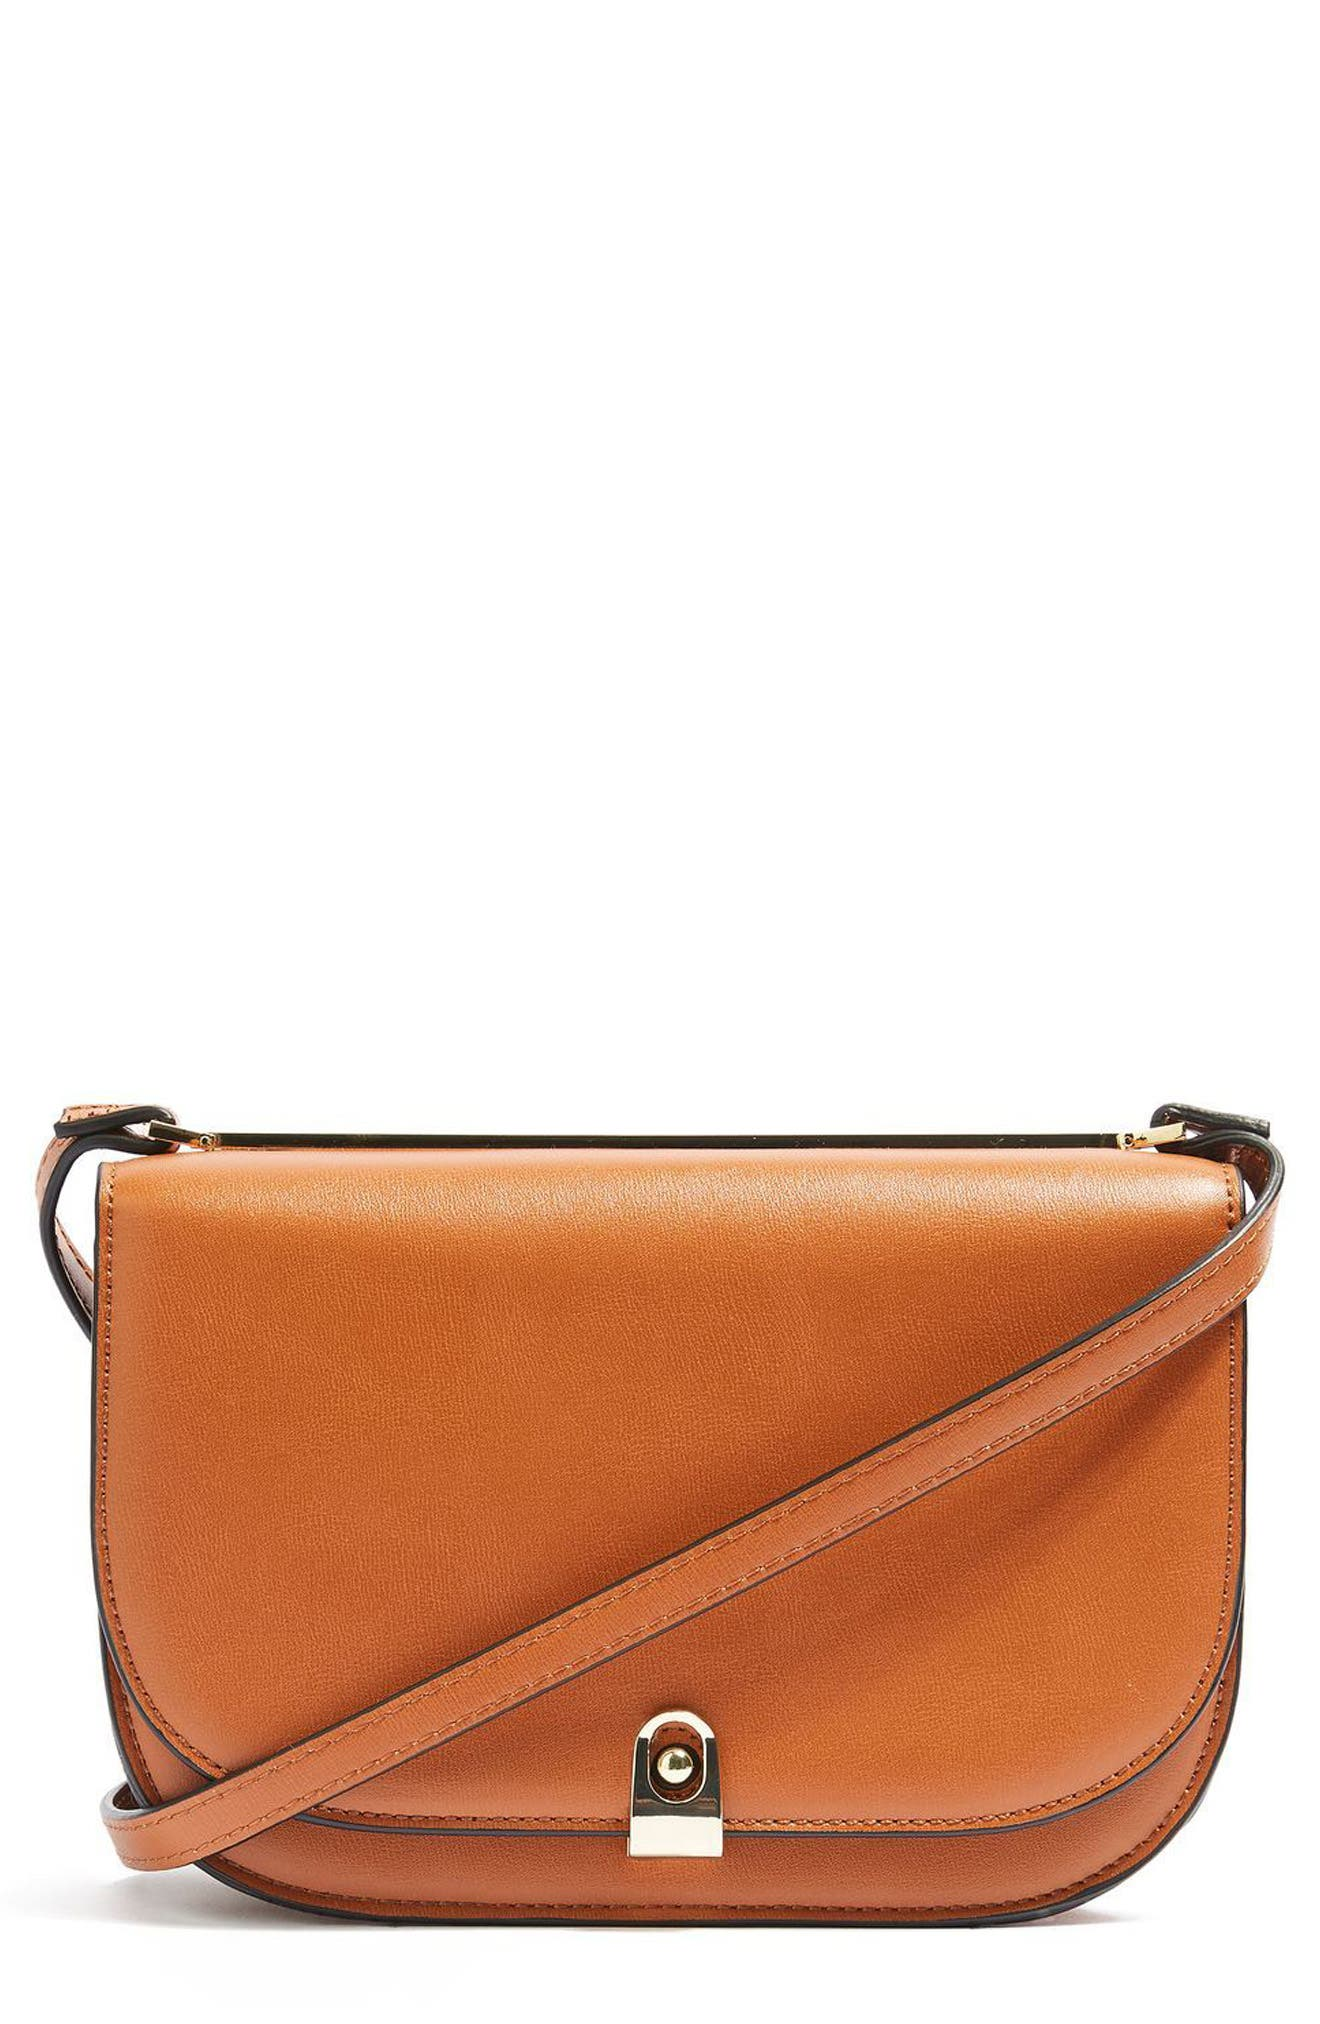 Topshop Oxford Faux Leather Crossbody Saddle Bag